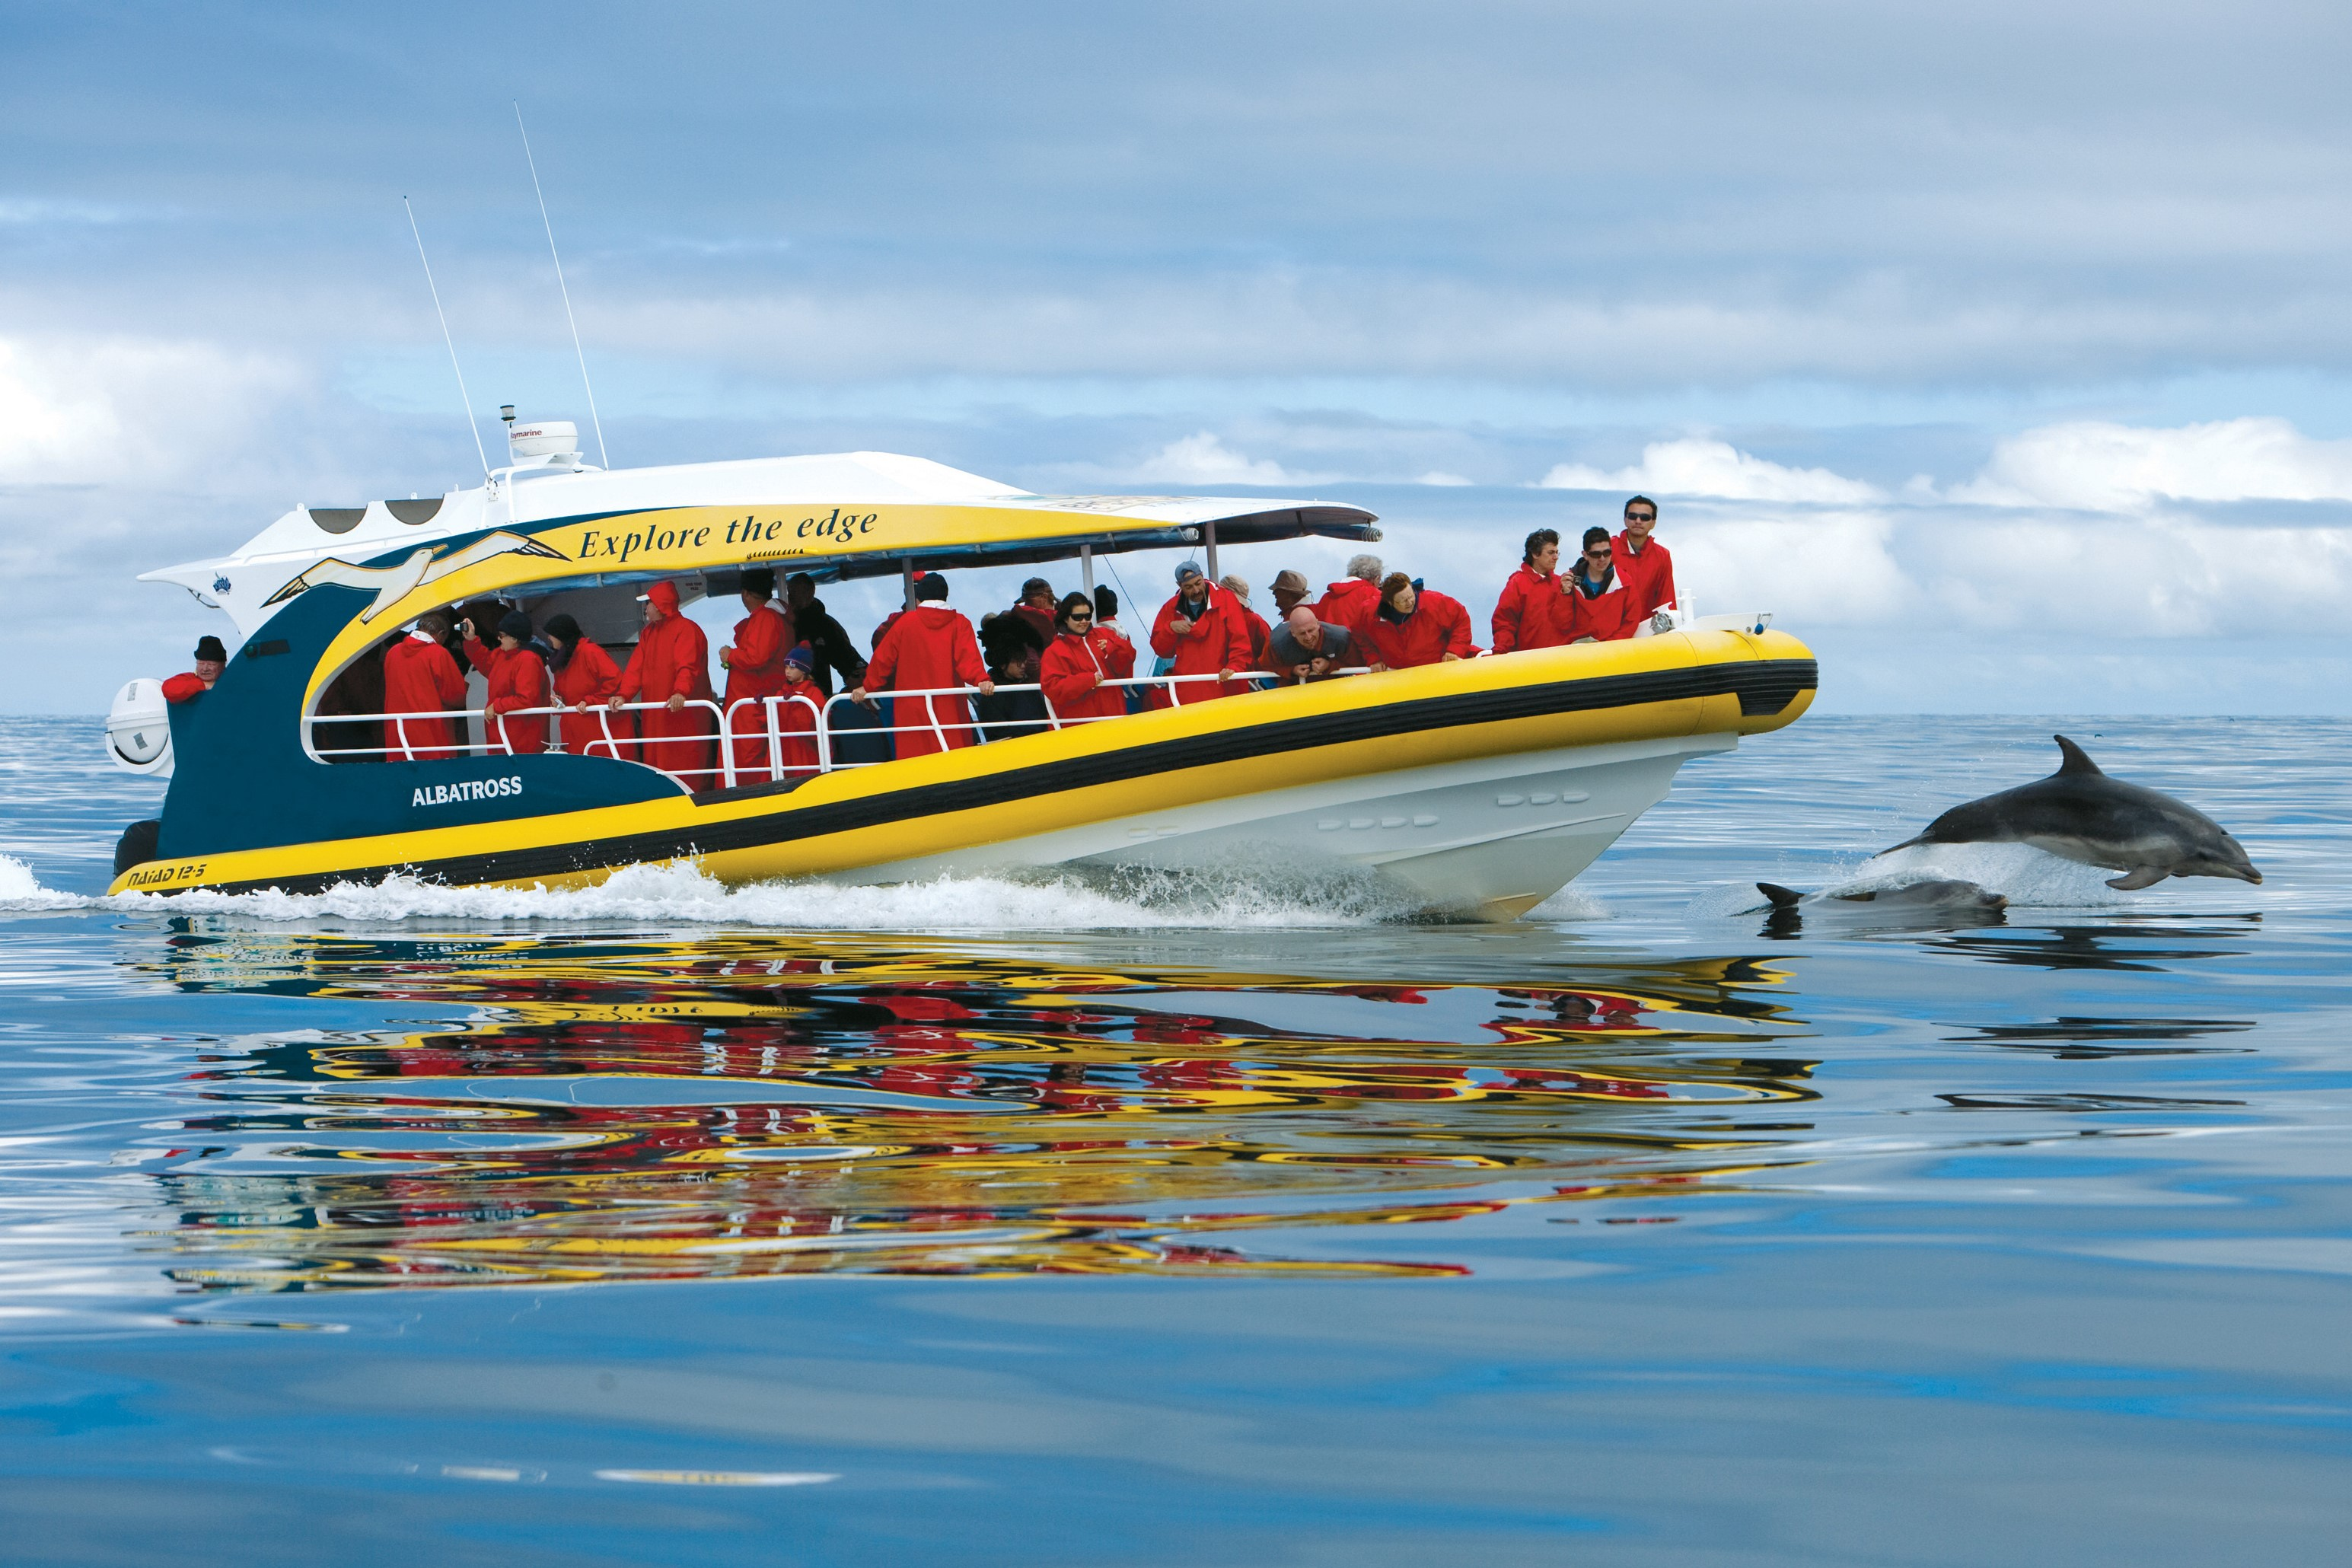 Bruny Island cruise, credit - Tourism Tasmania & Joe Shemesh